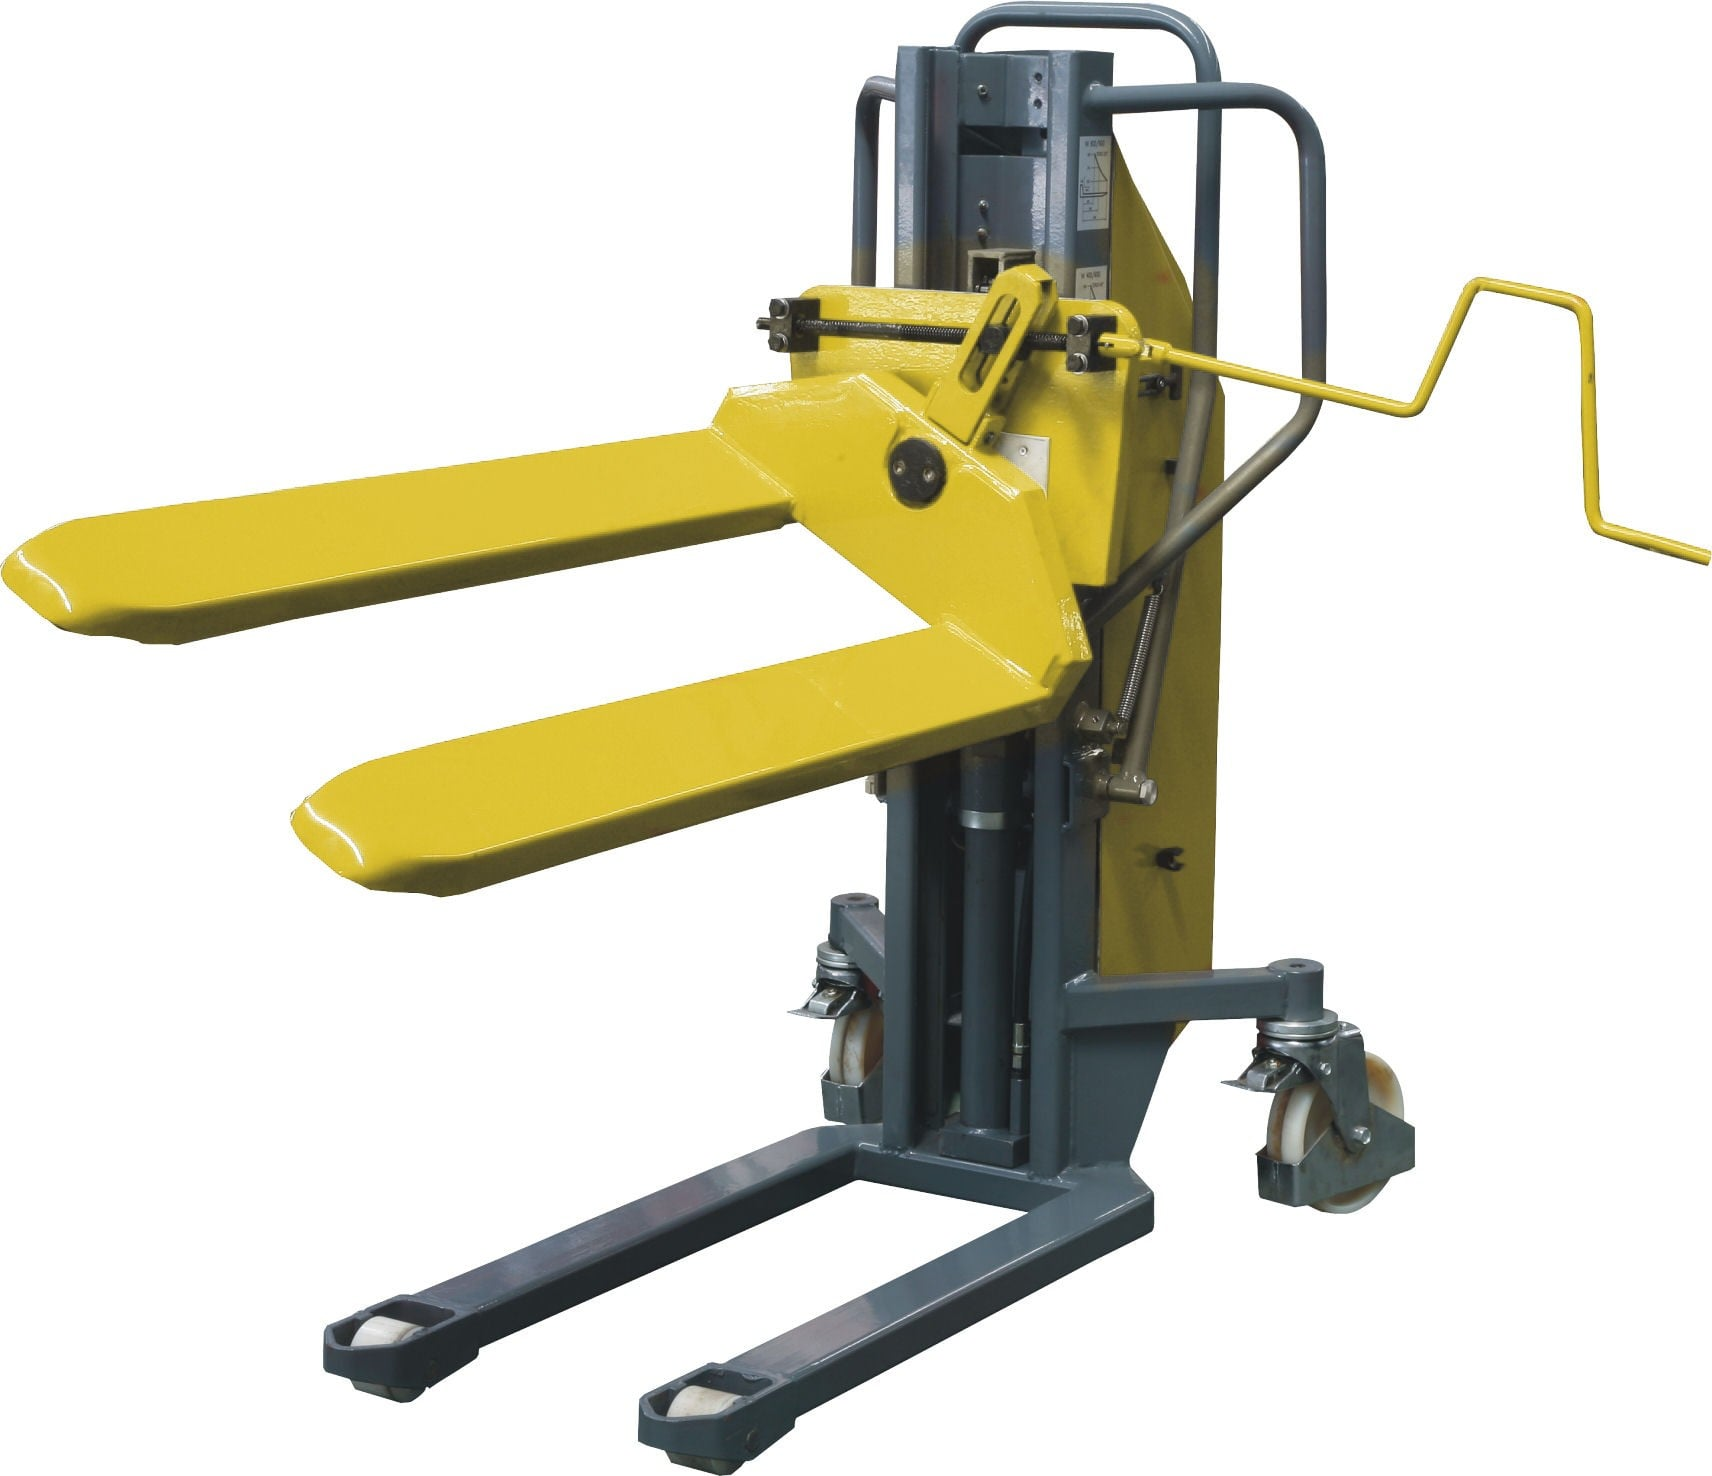 Ehst0809 Semi Electric High Lift Pallet Truck With Tilting